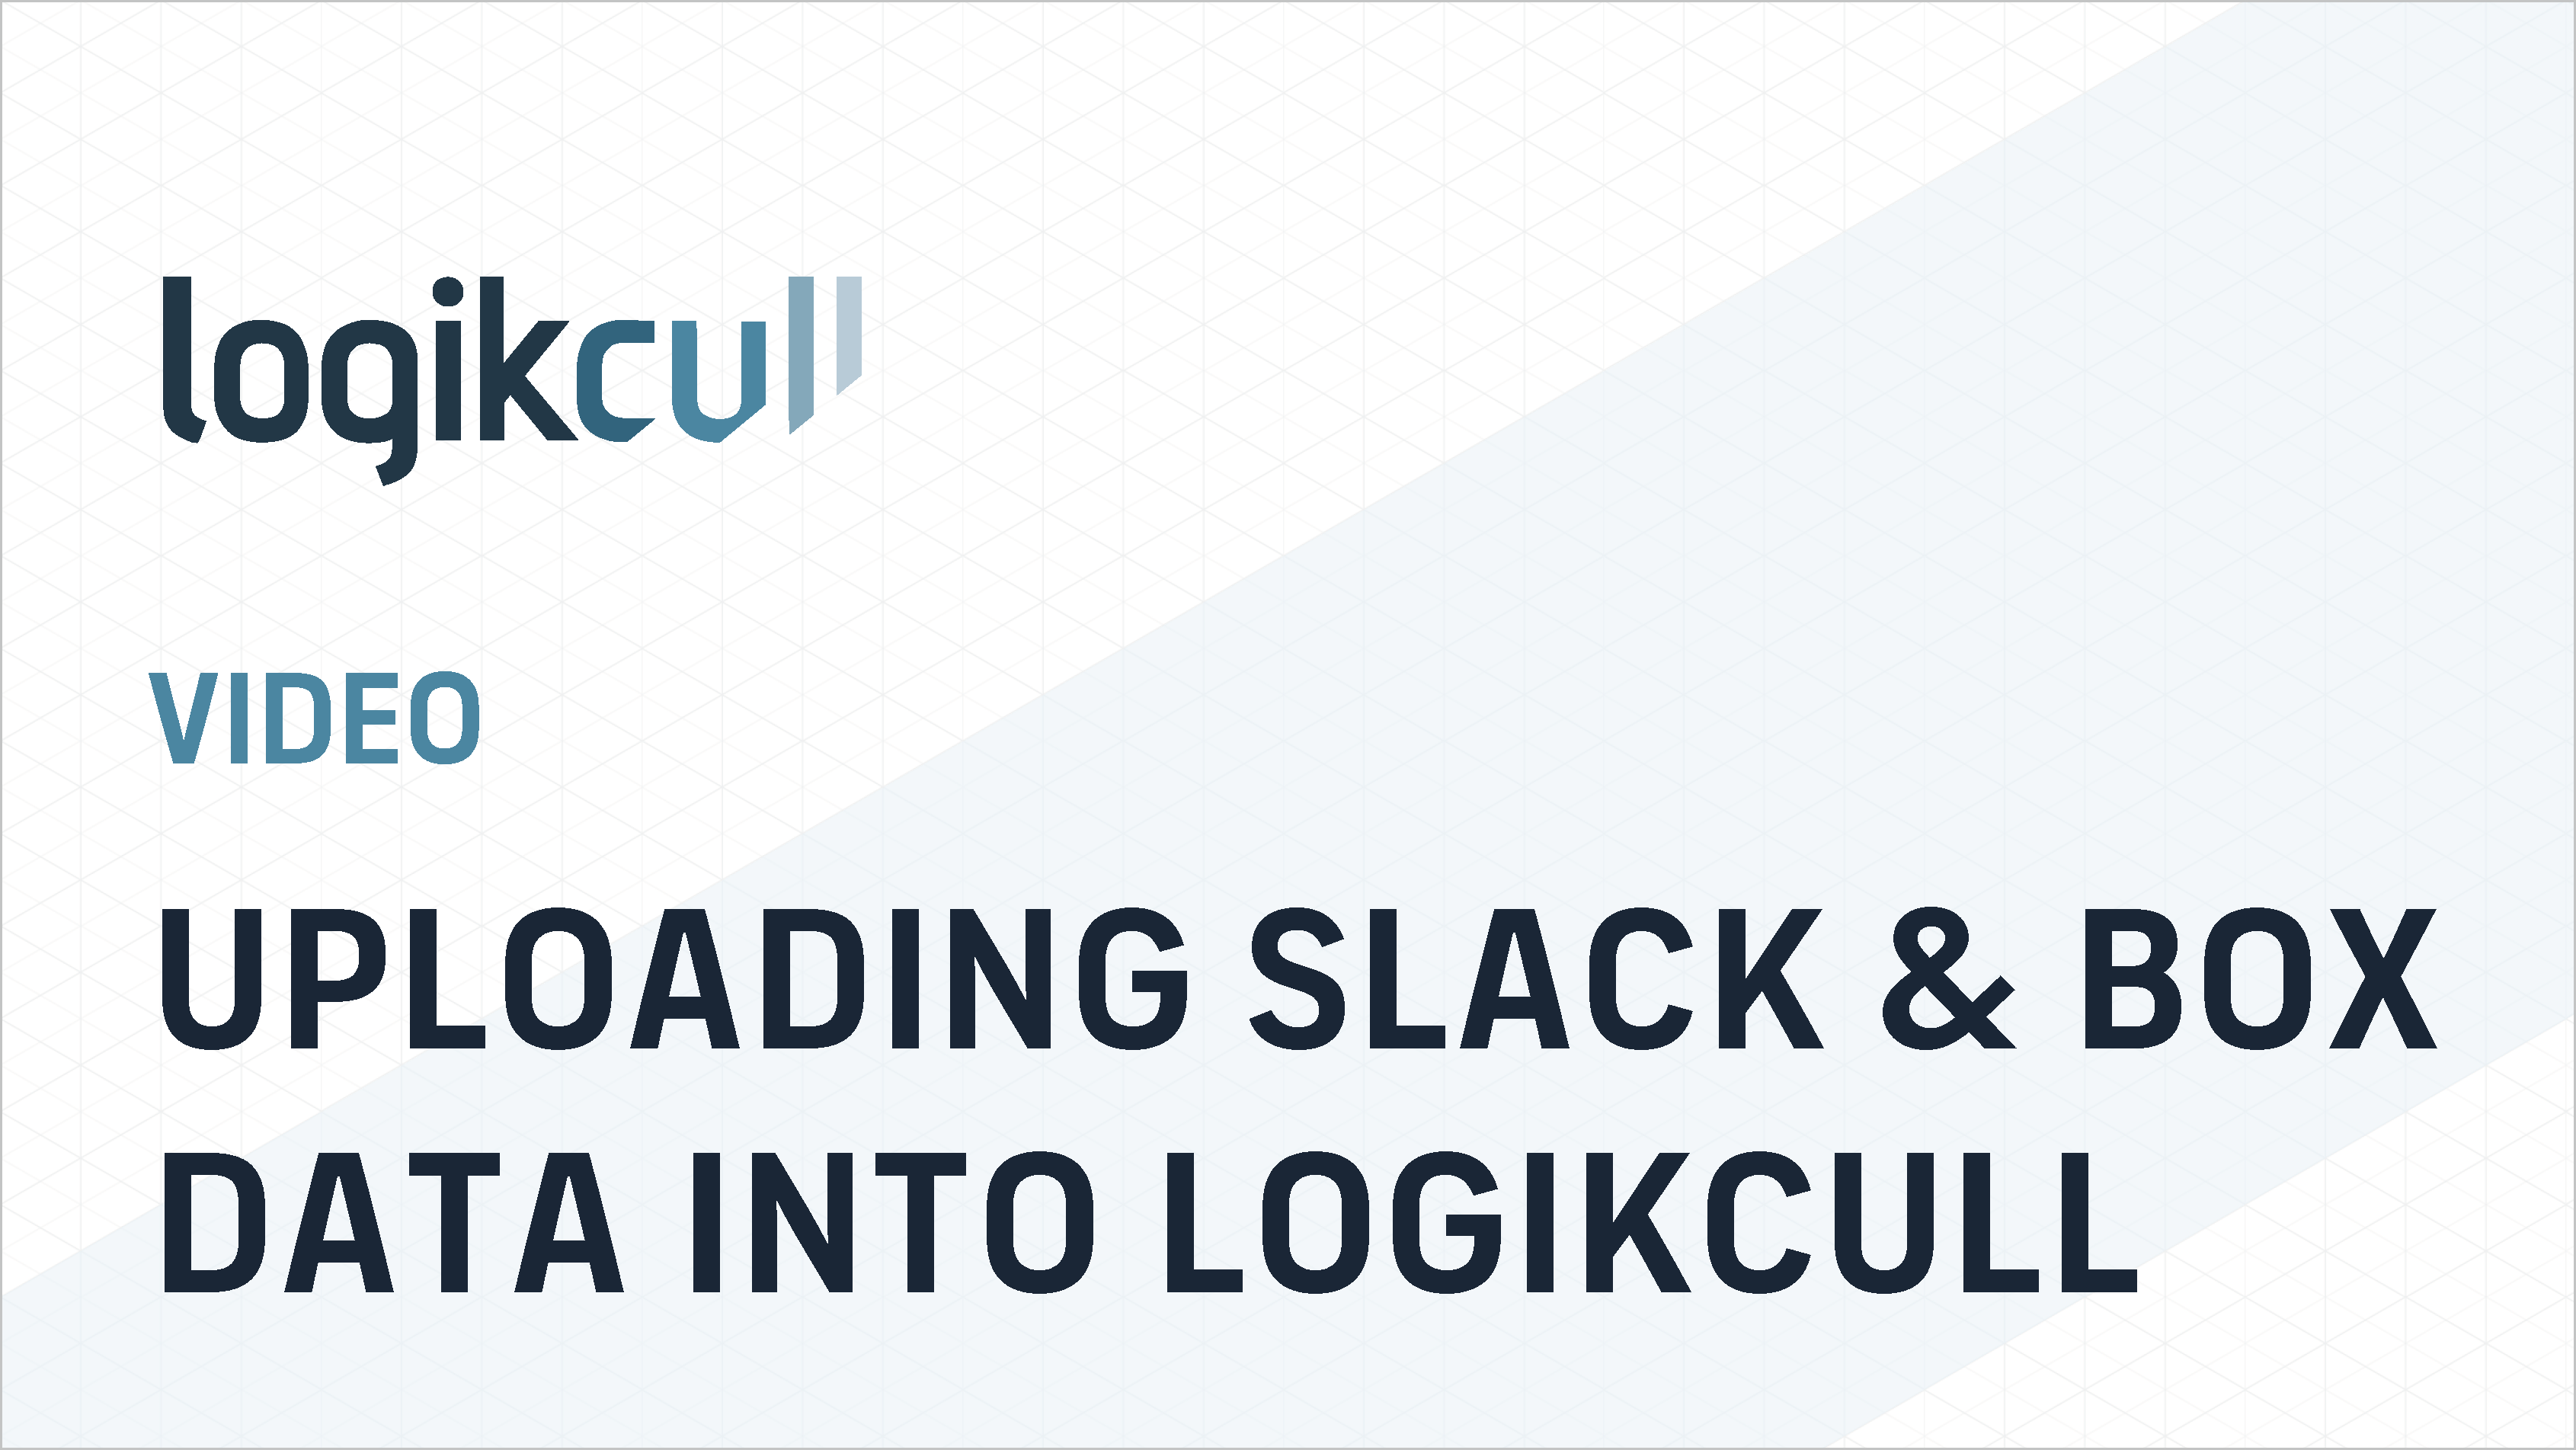 Uploading Slack or Box Data into Logikcull